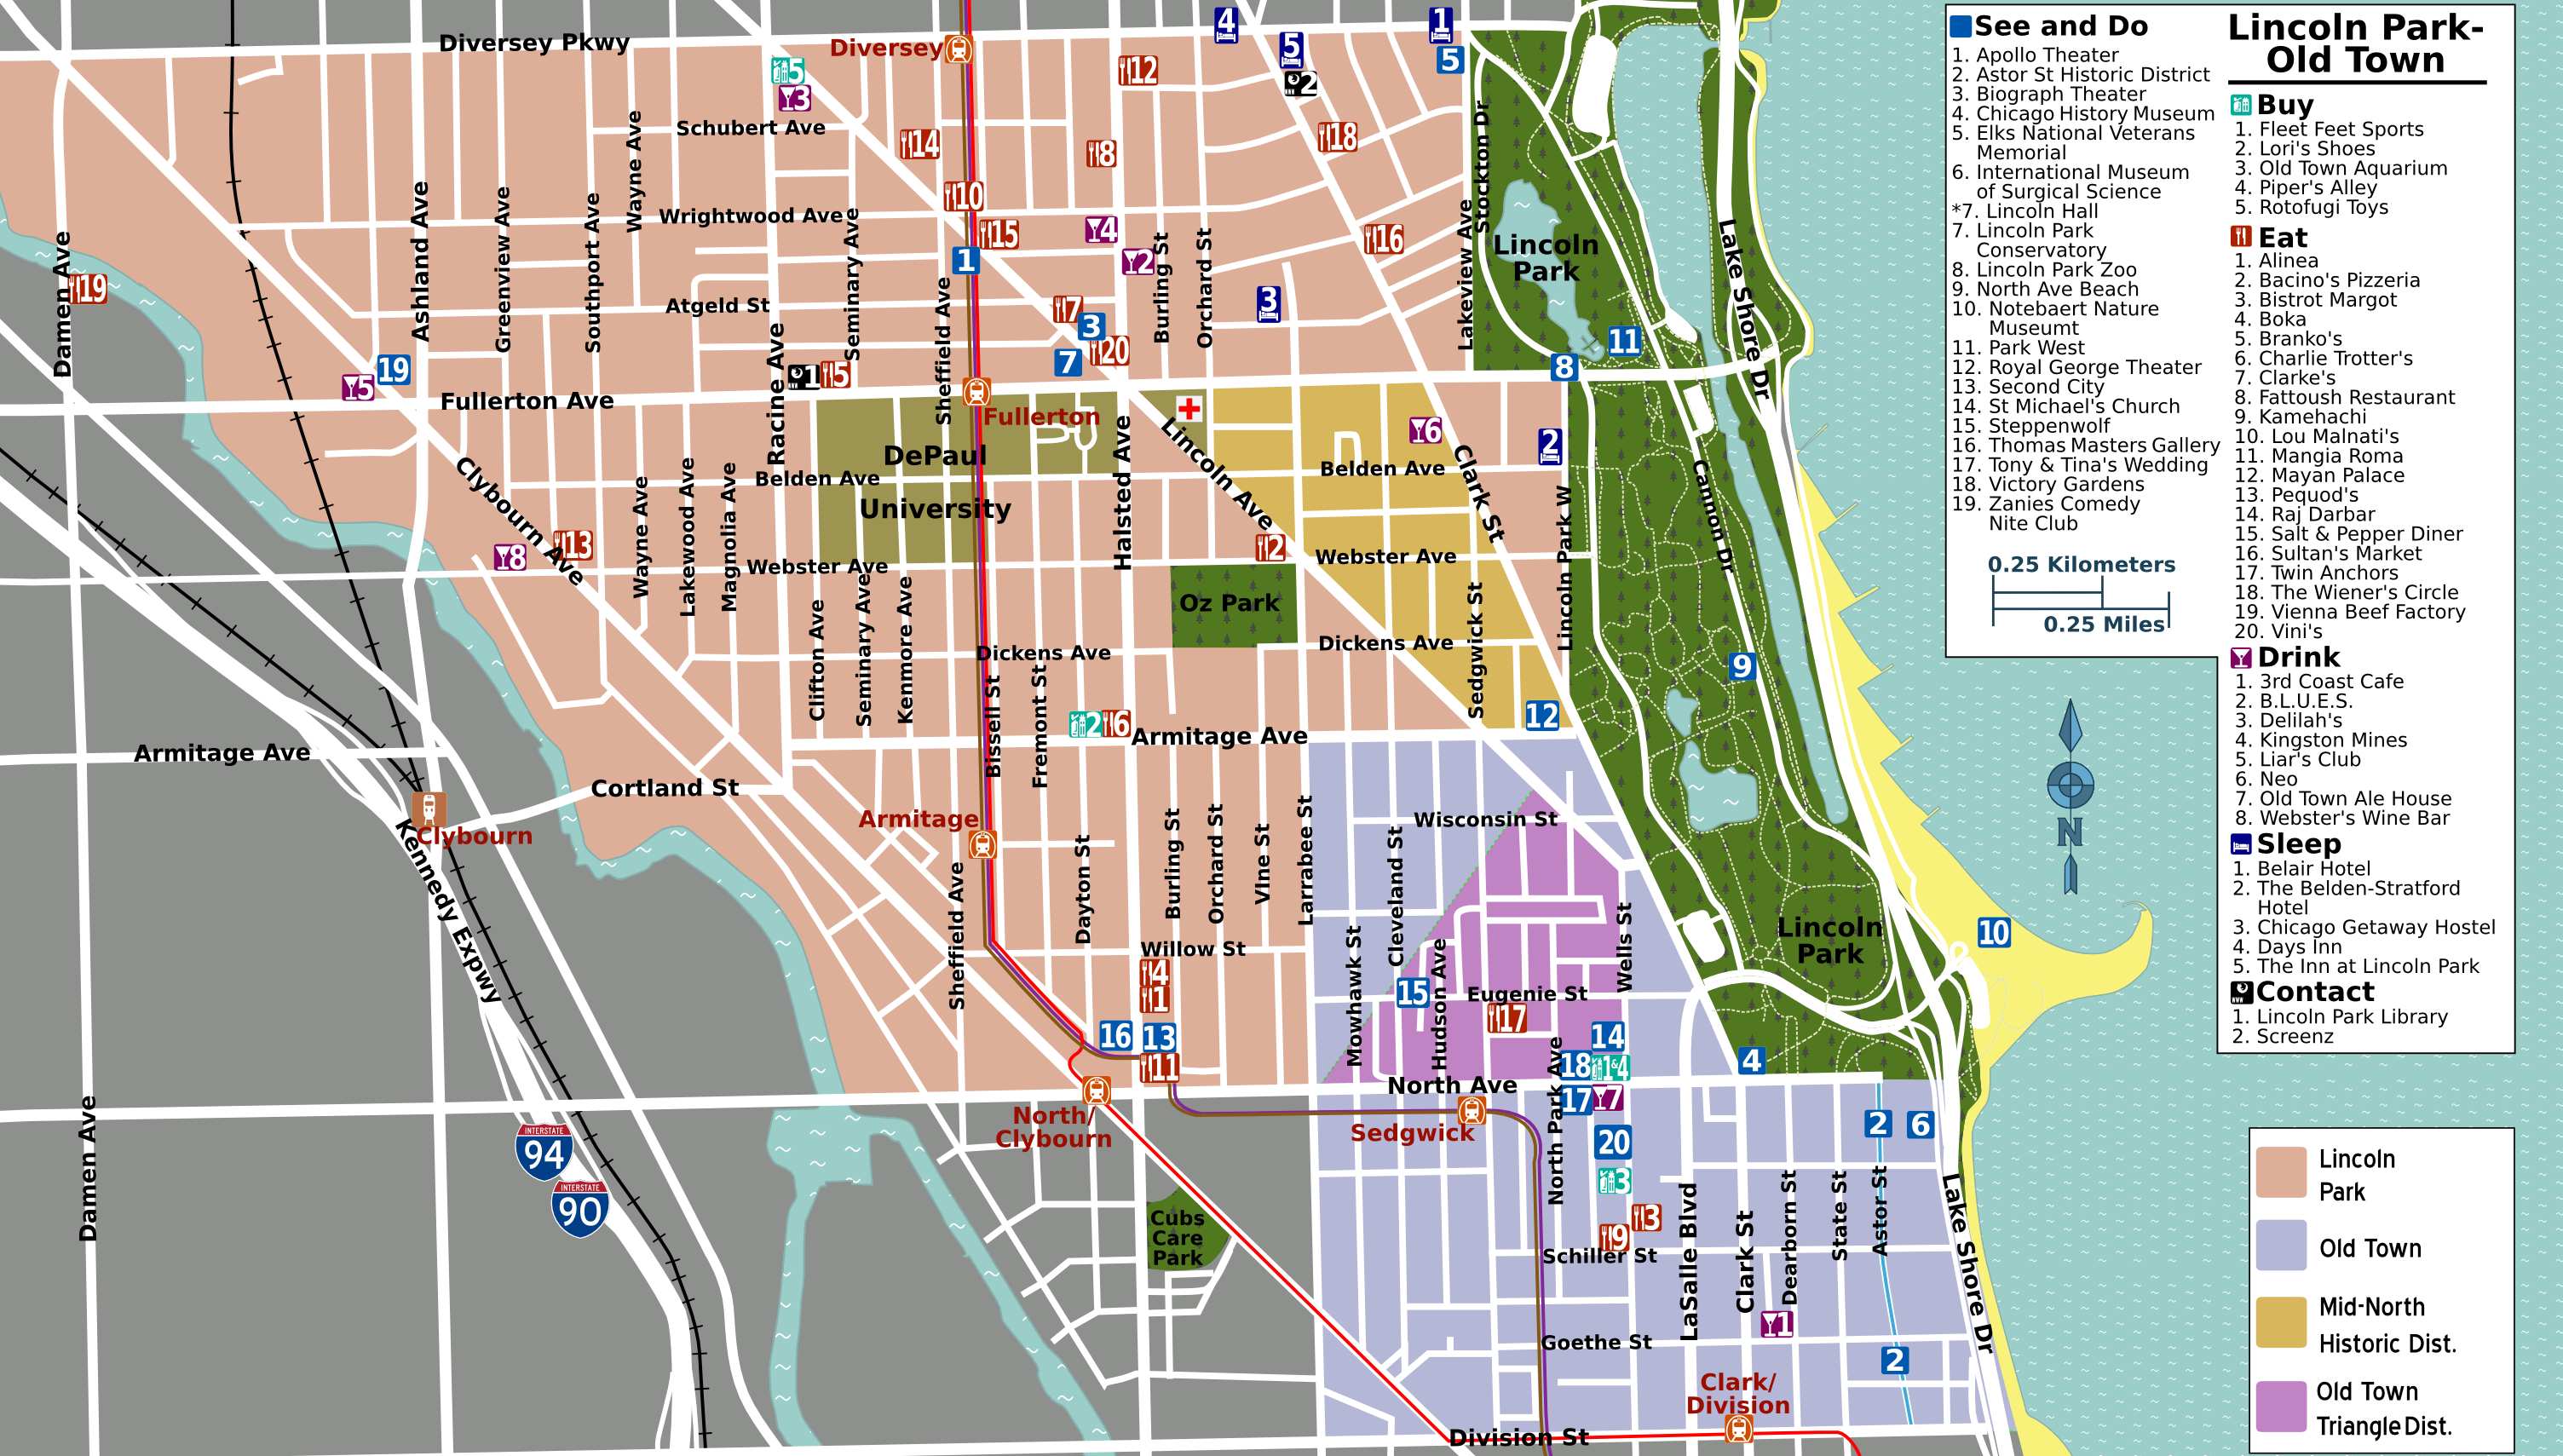 Lincoln Park Map File:Lincoln Park map.png   Wikimedia Commons Lincoln Park Map